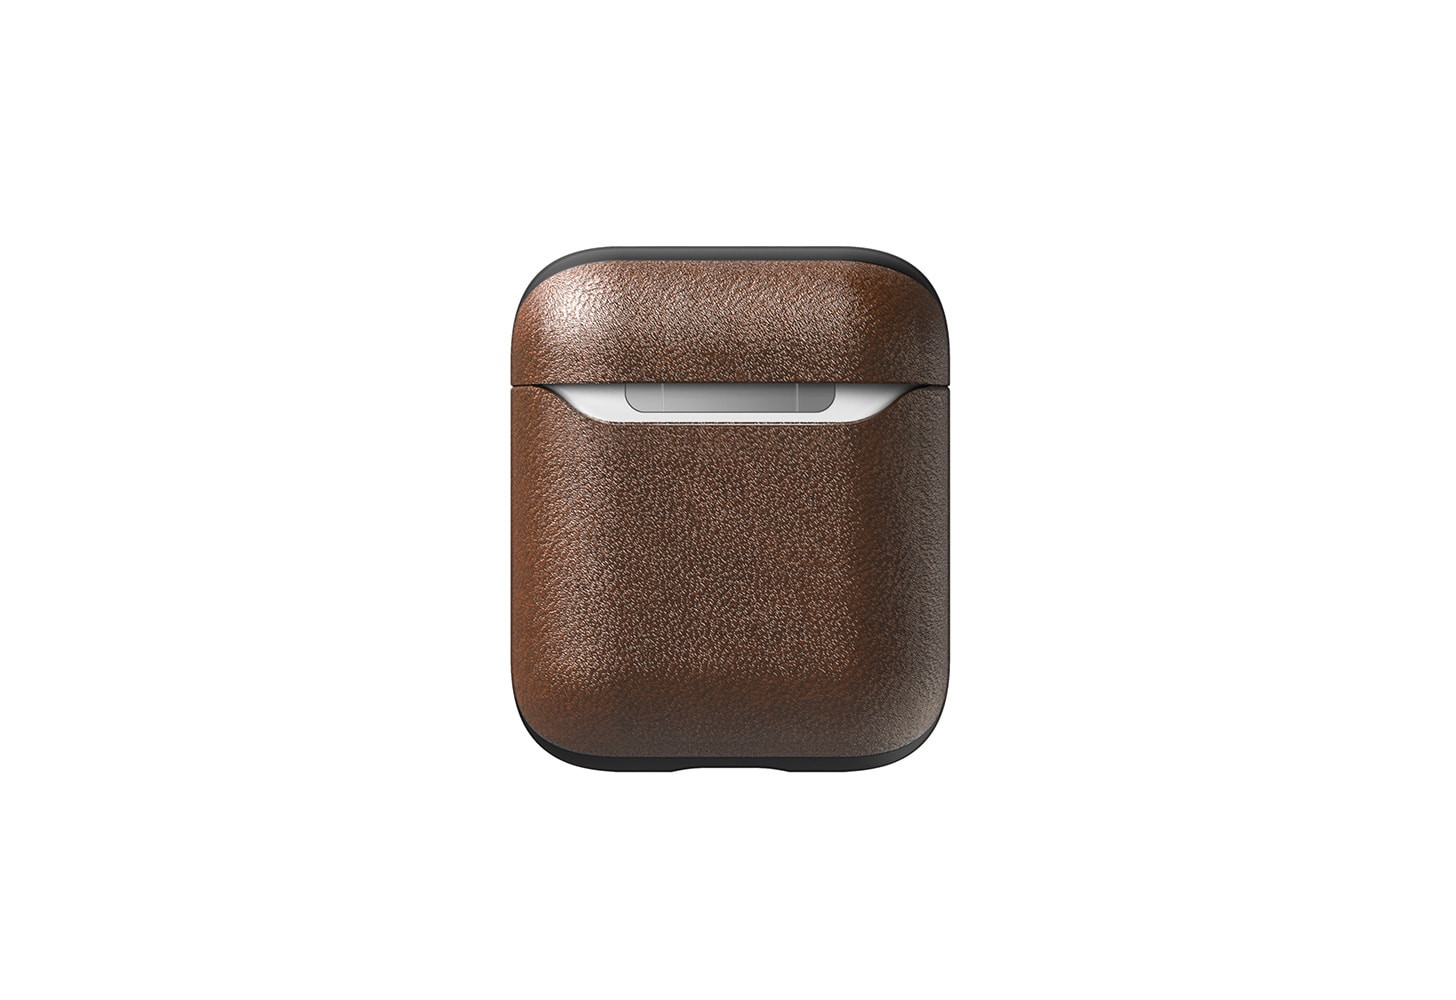 nomad-airpods-case-brown-3.jpg